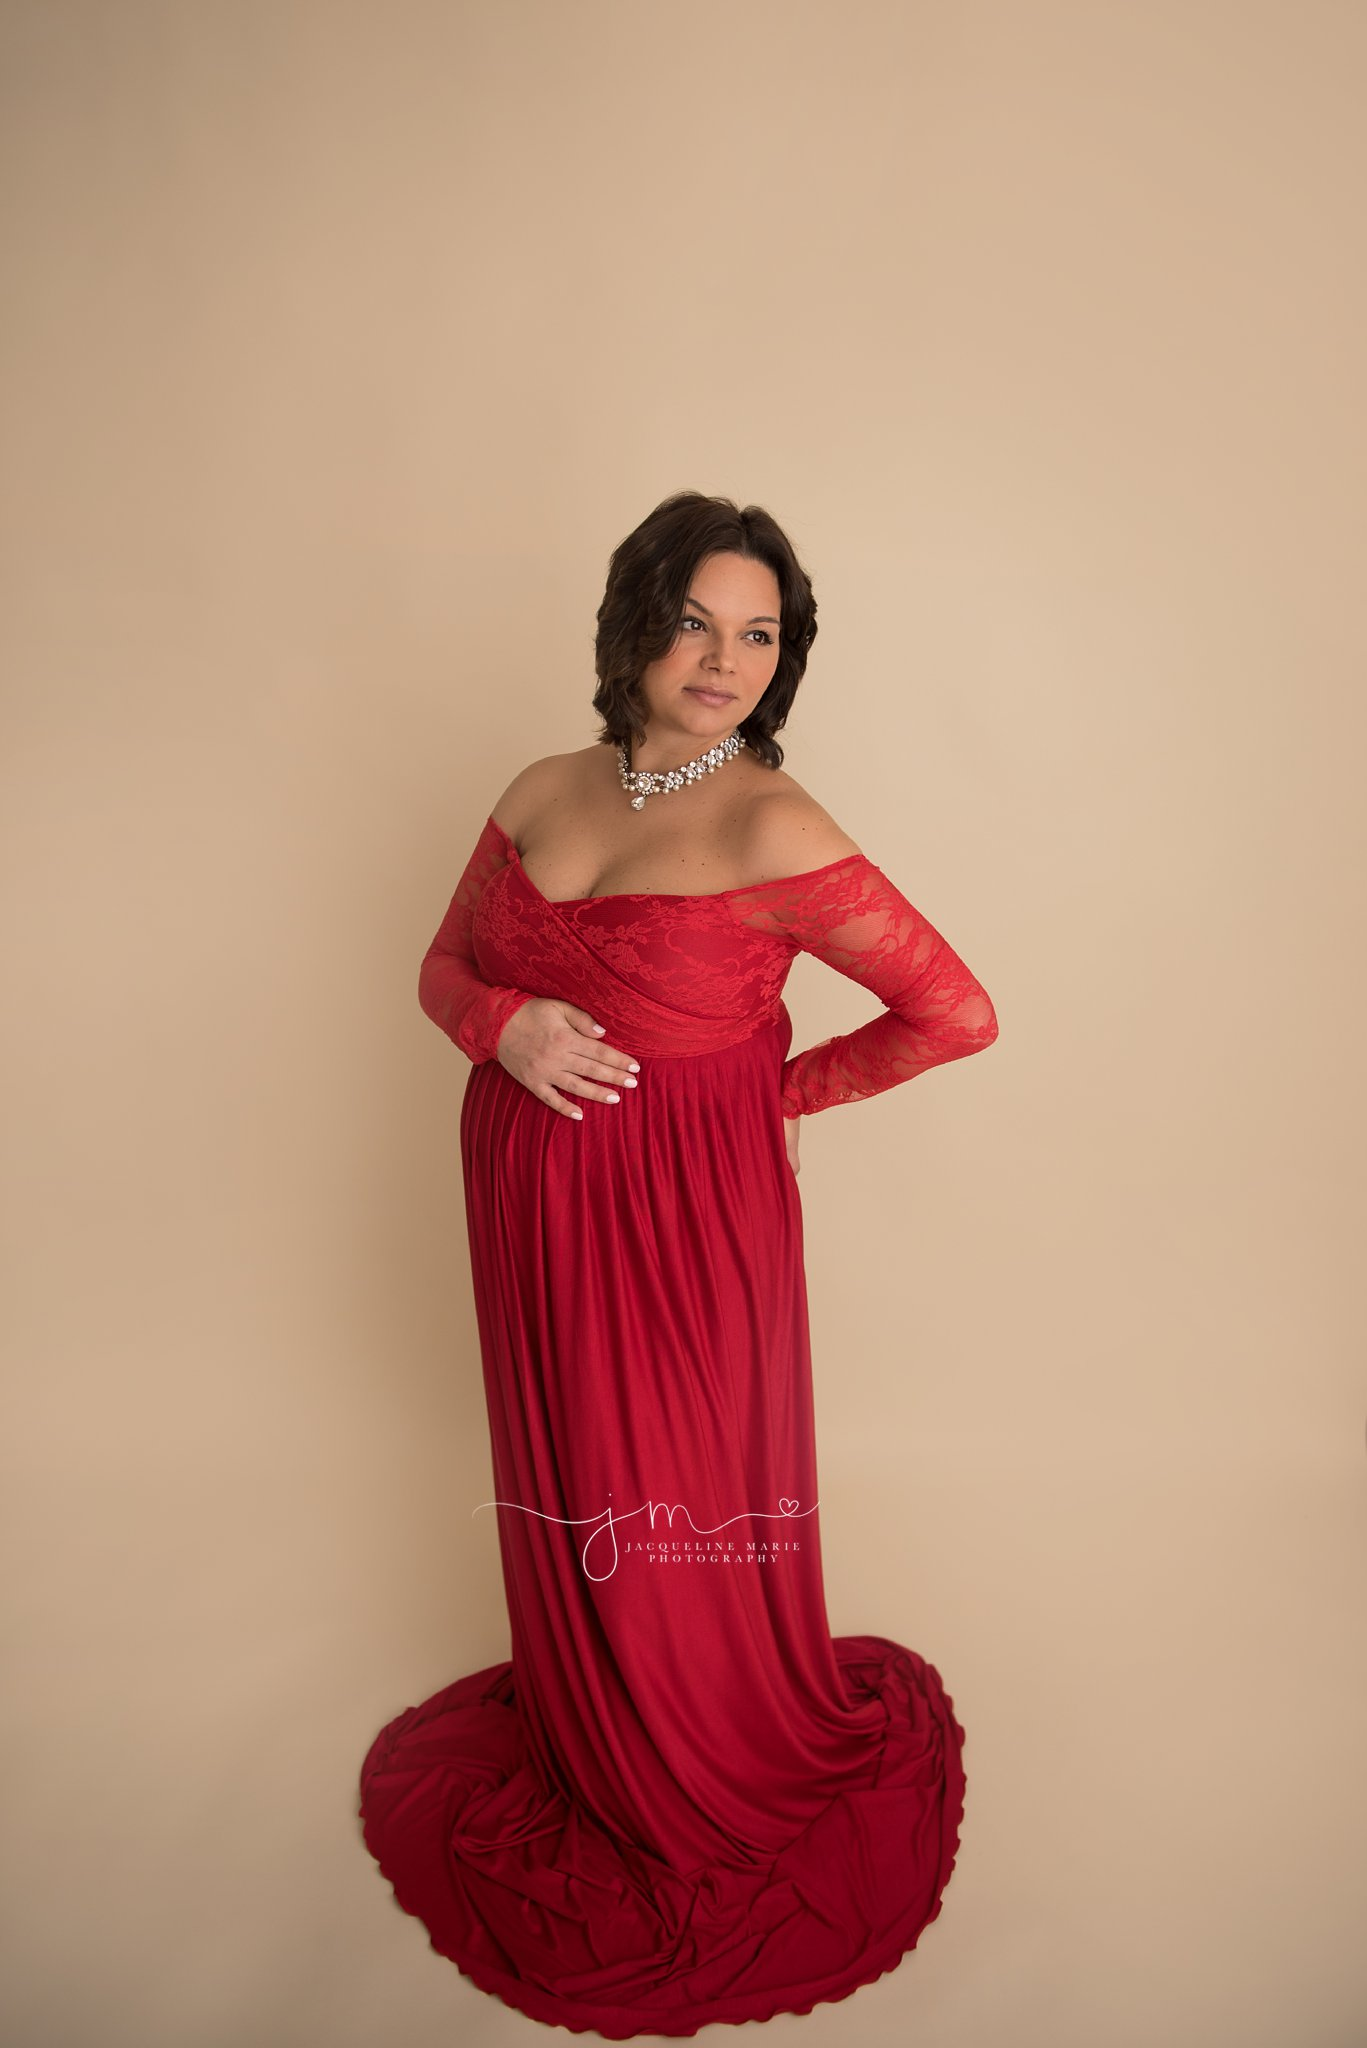 columbus ohio maternity photographer features image of mother to be in red maternity gown